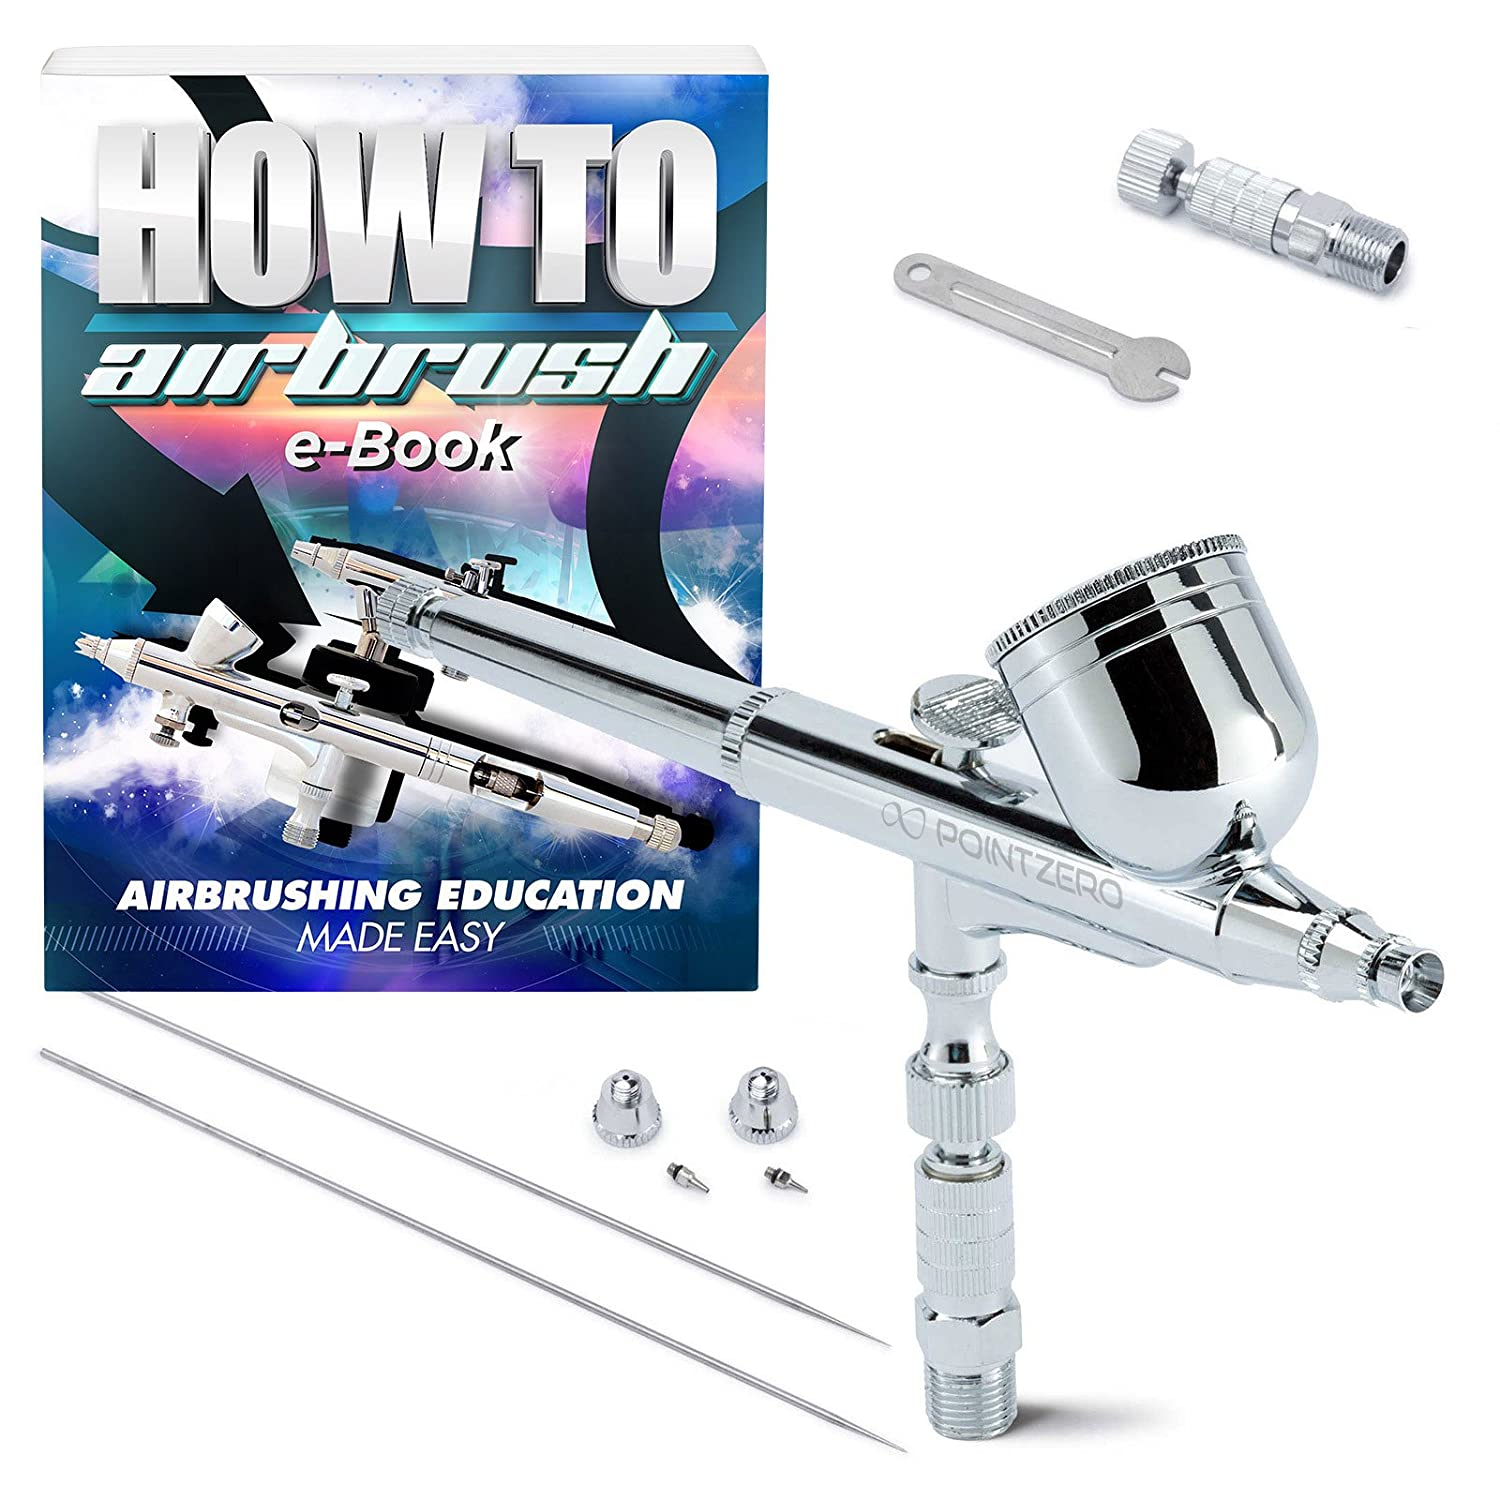 PointZero Dual-Action 7cc Gravity-Feed Airbrush 3 Tip Set (.2mm .3mm .5mm) PointZero Airbrush 4336951490